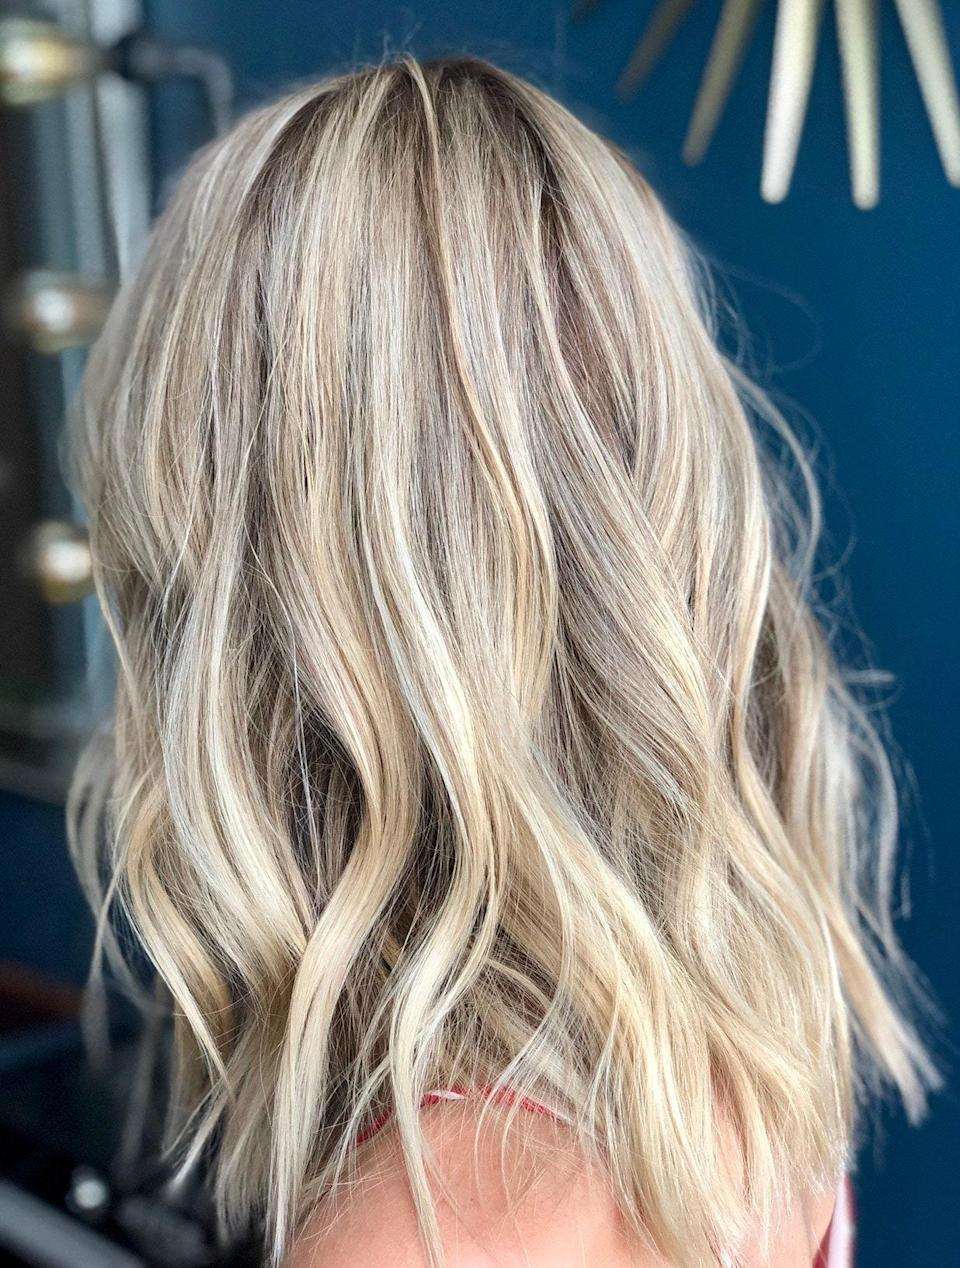 For a really rich, layered blond, have your stylist mix cool and warm tones like bright blond and honey. For this color, Grummel lightened her base and went in with full highlights to keep the color from looking flat.